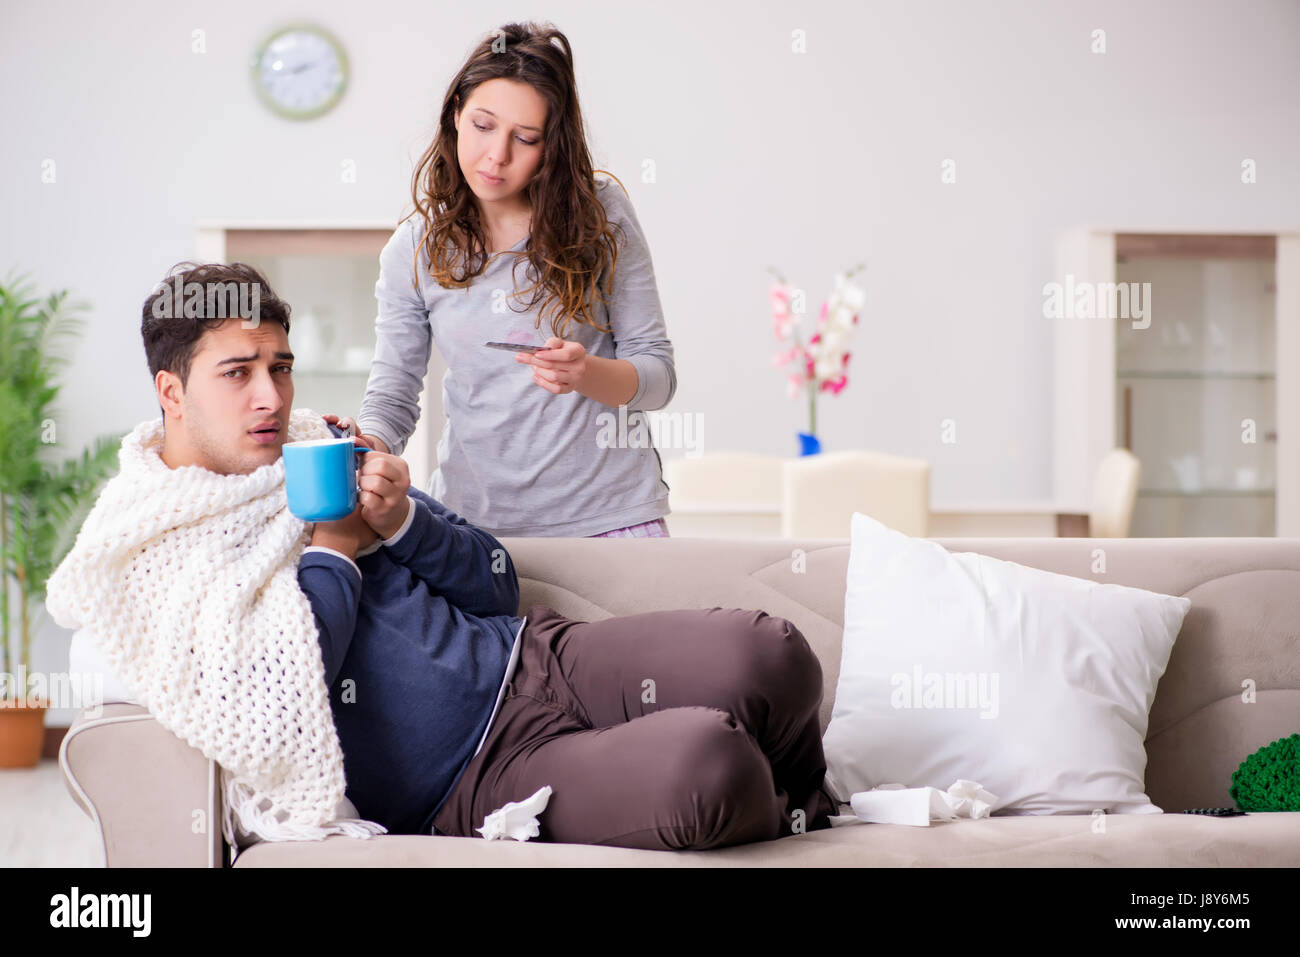 Wife Caring For Sick Husband At Home Stock Photo